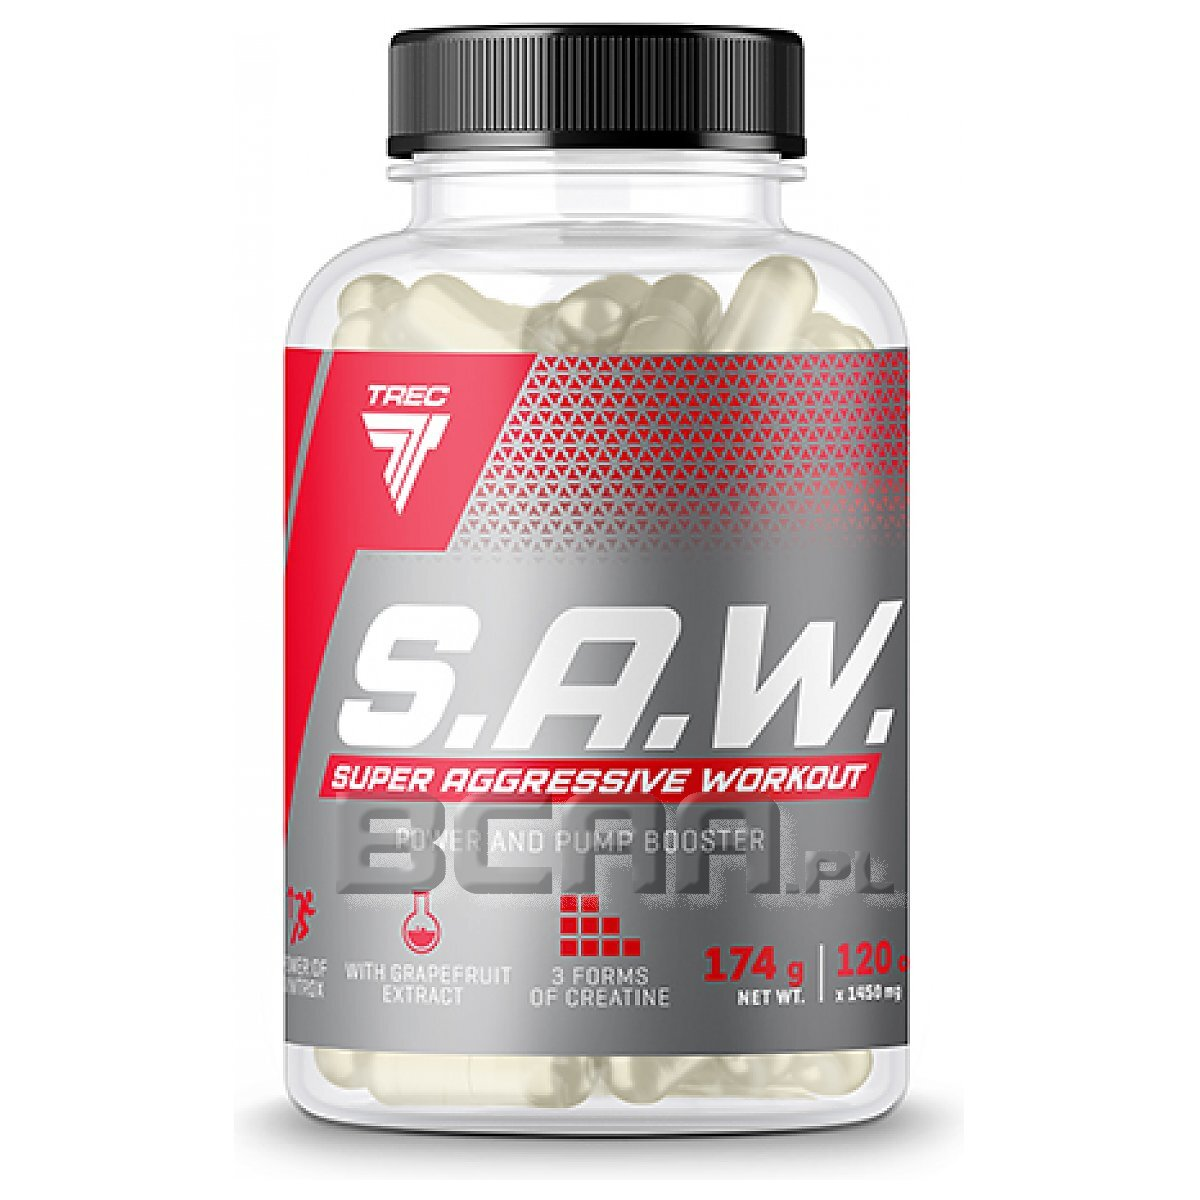 trec nutrition saw super anabolic workout review